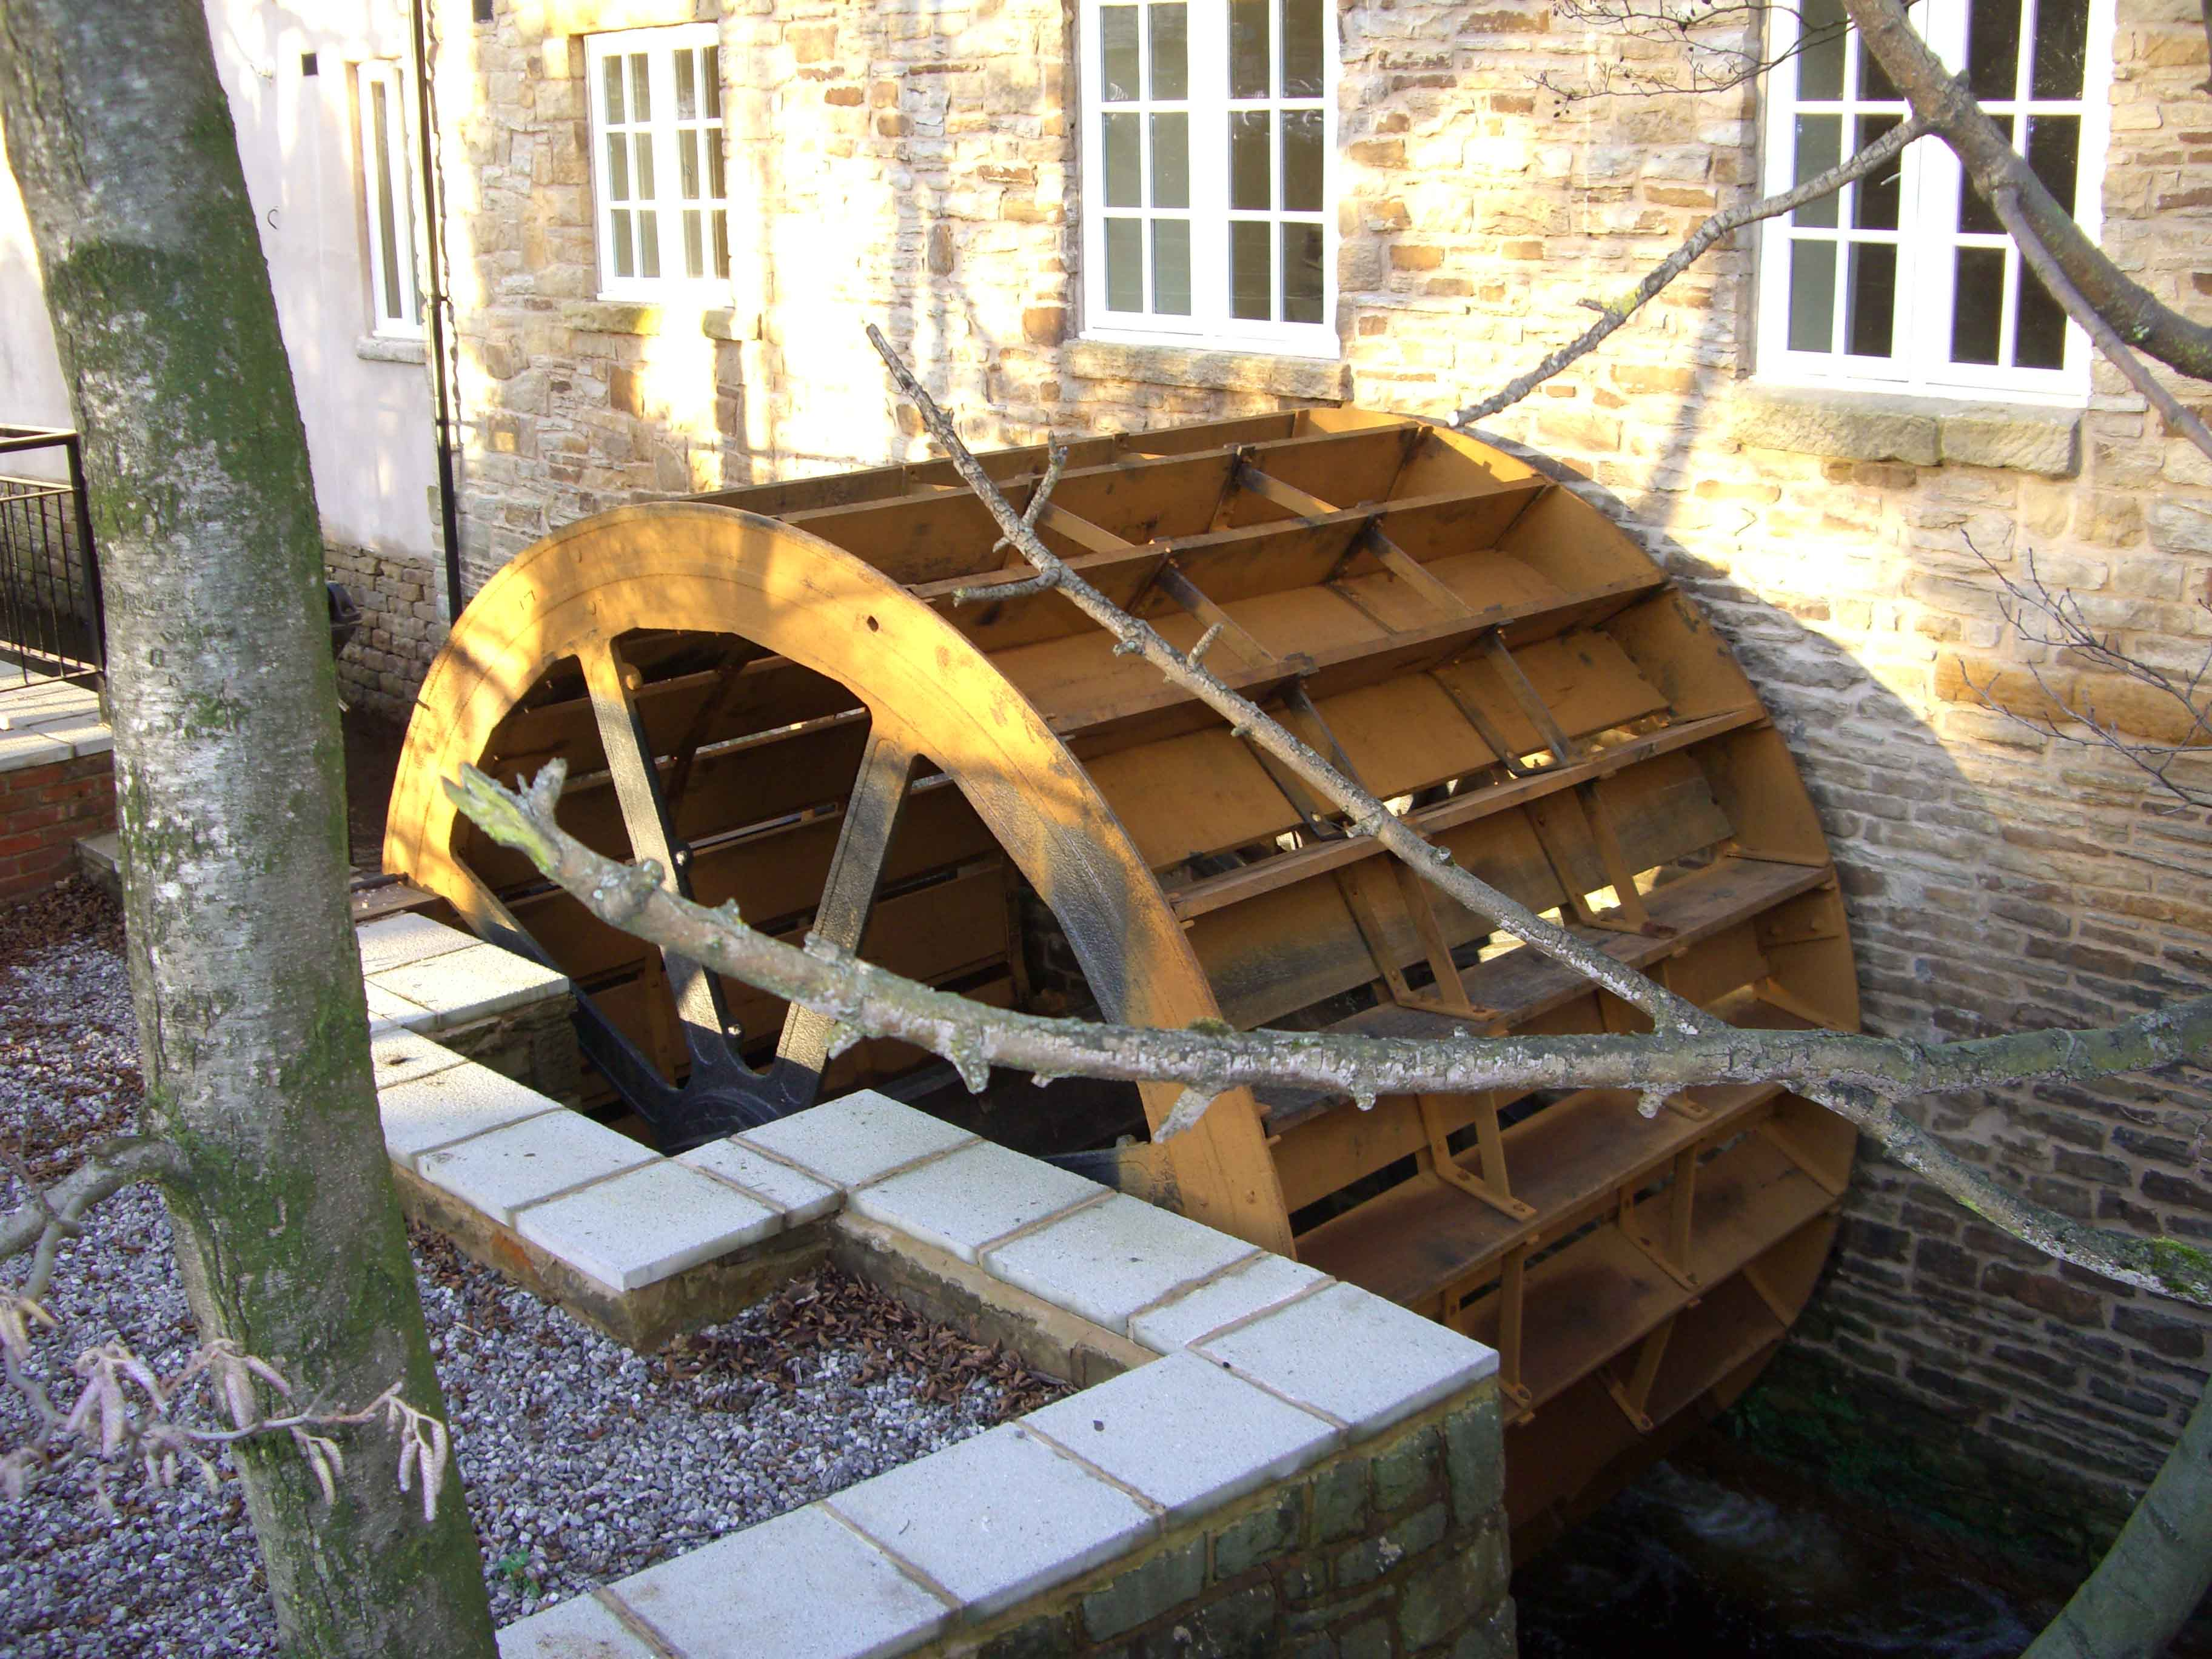 Water Wheel Mill Pictures Corn Mill Water Wheel.jpg